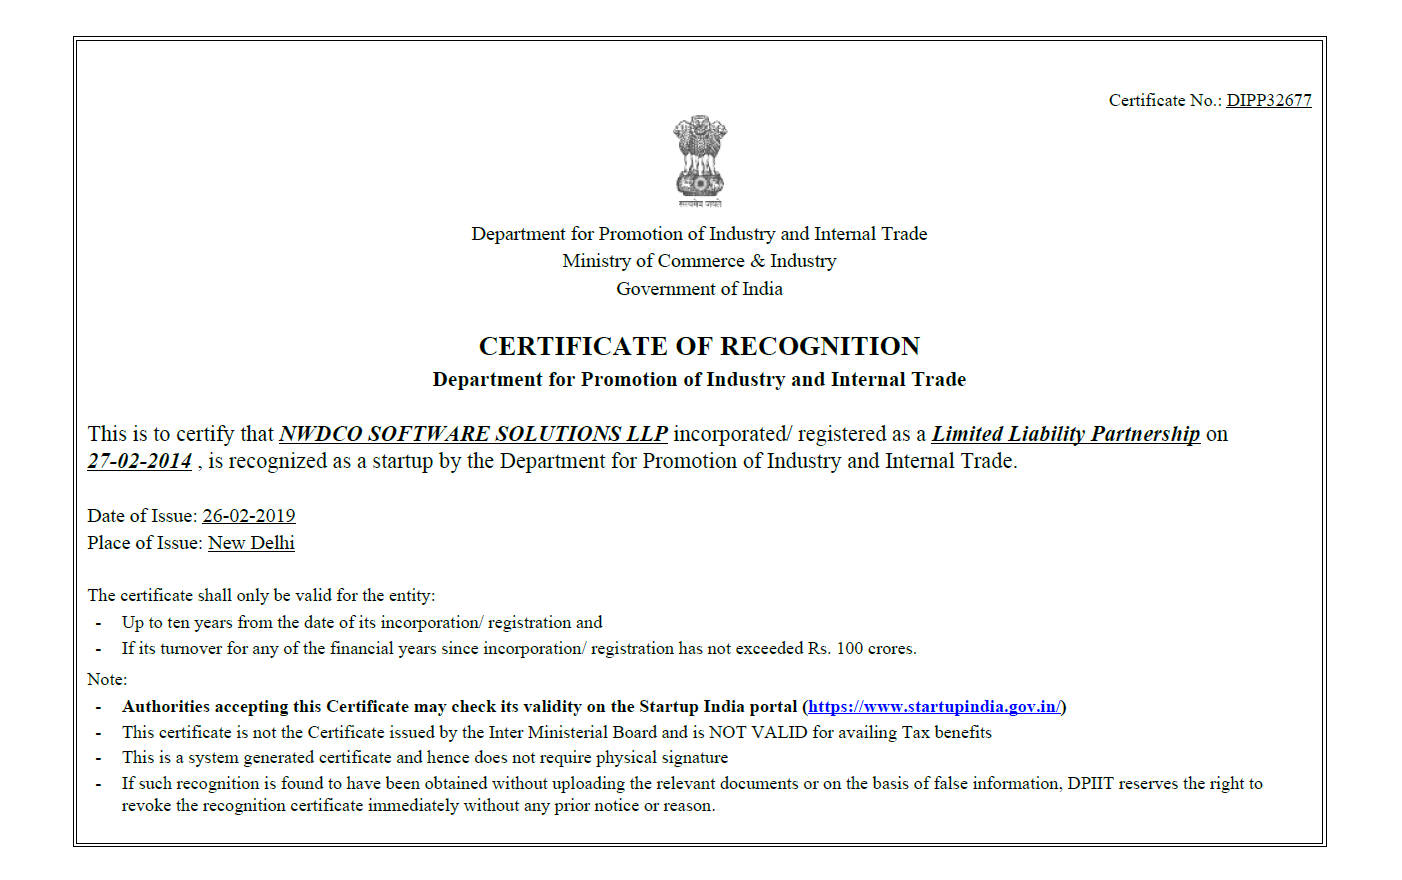 DIPP Recognised Certificate for Startup India